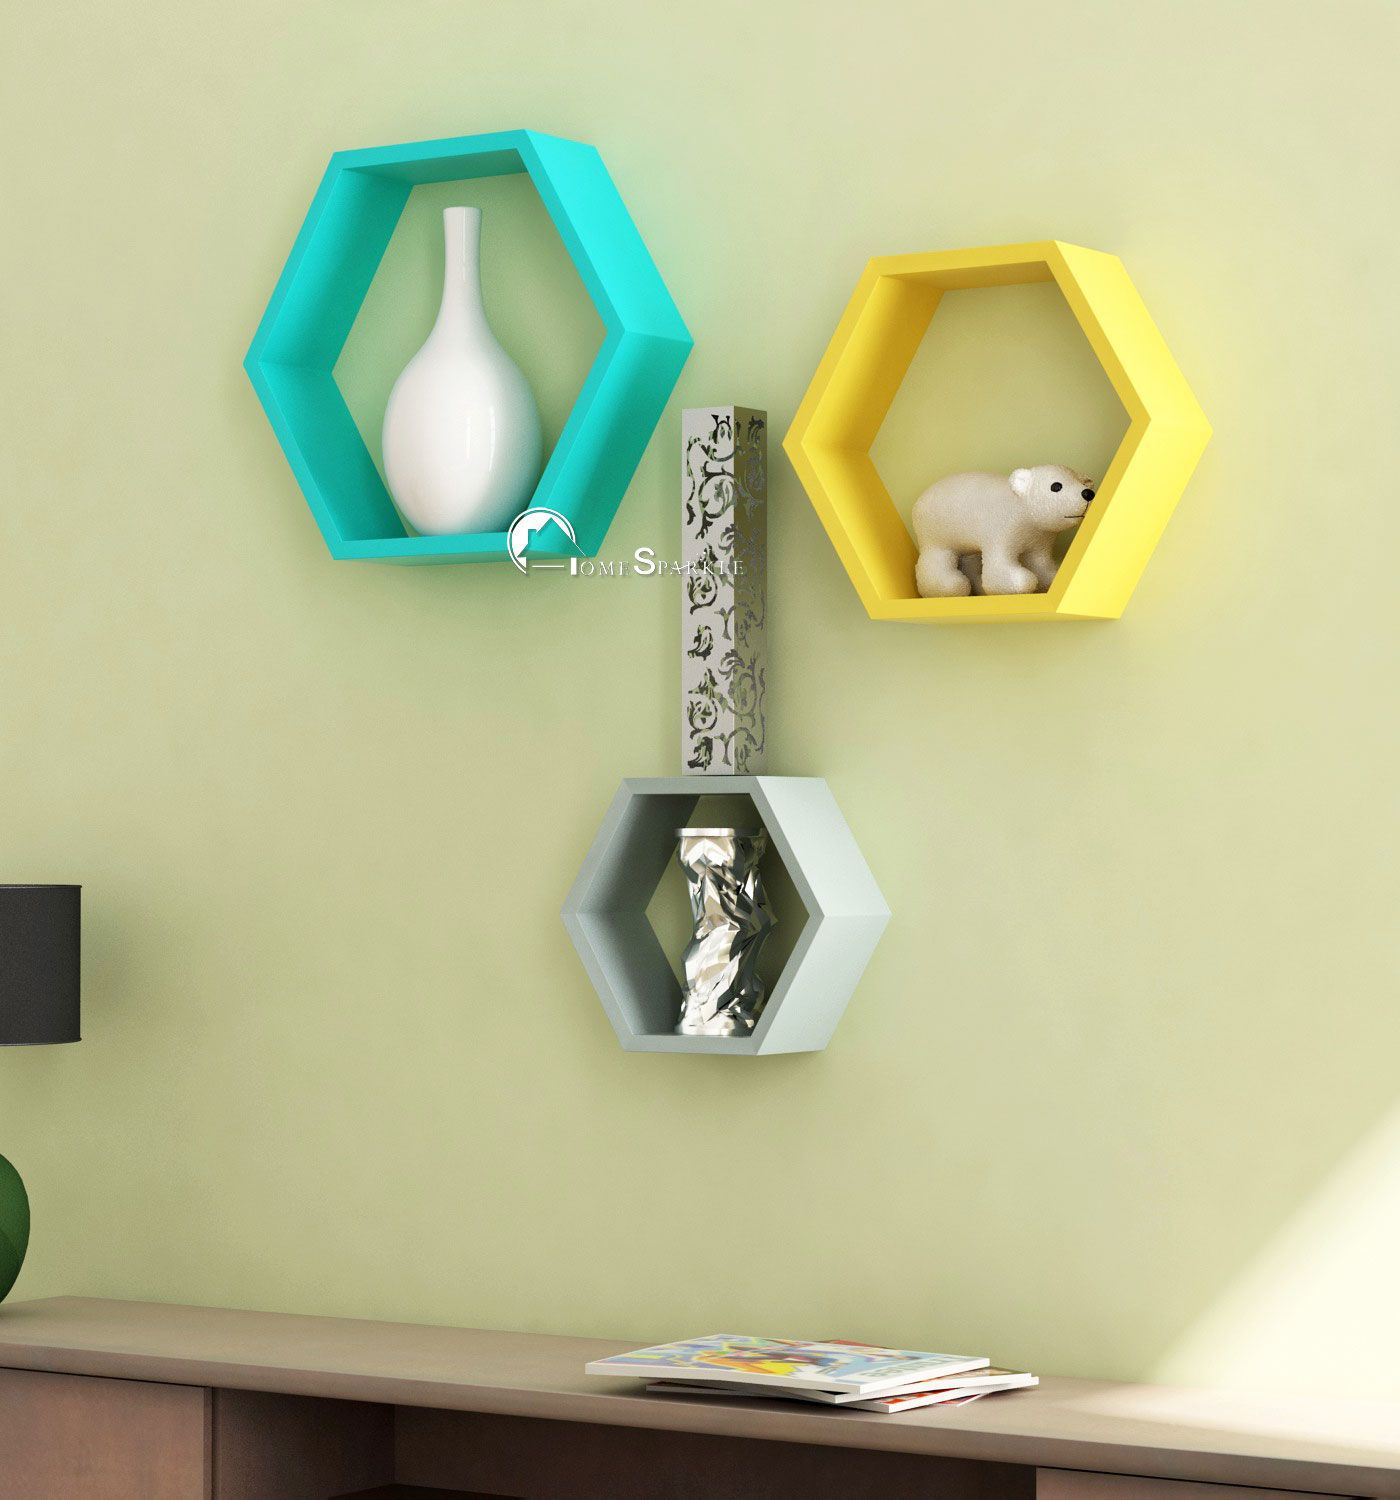 Home Sparkle MDF Hexagonal Wall Racks For Wall Décor -Suitable For Living Room/Bed Room (Designed By Craftsman)